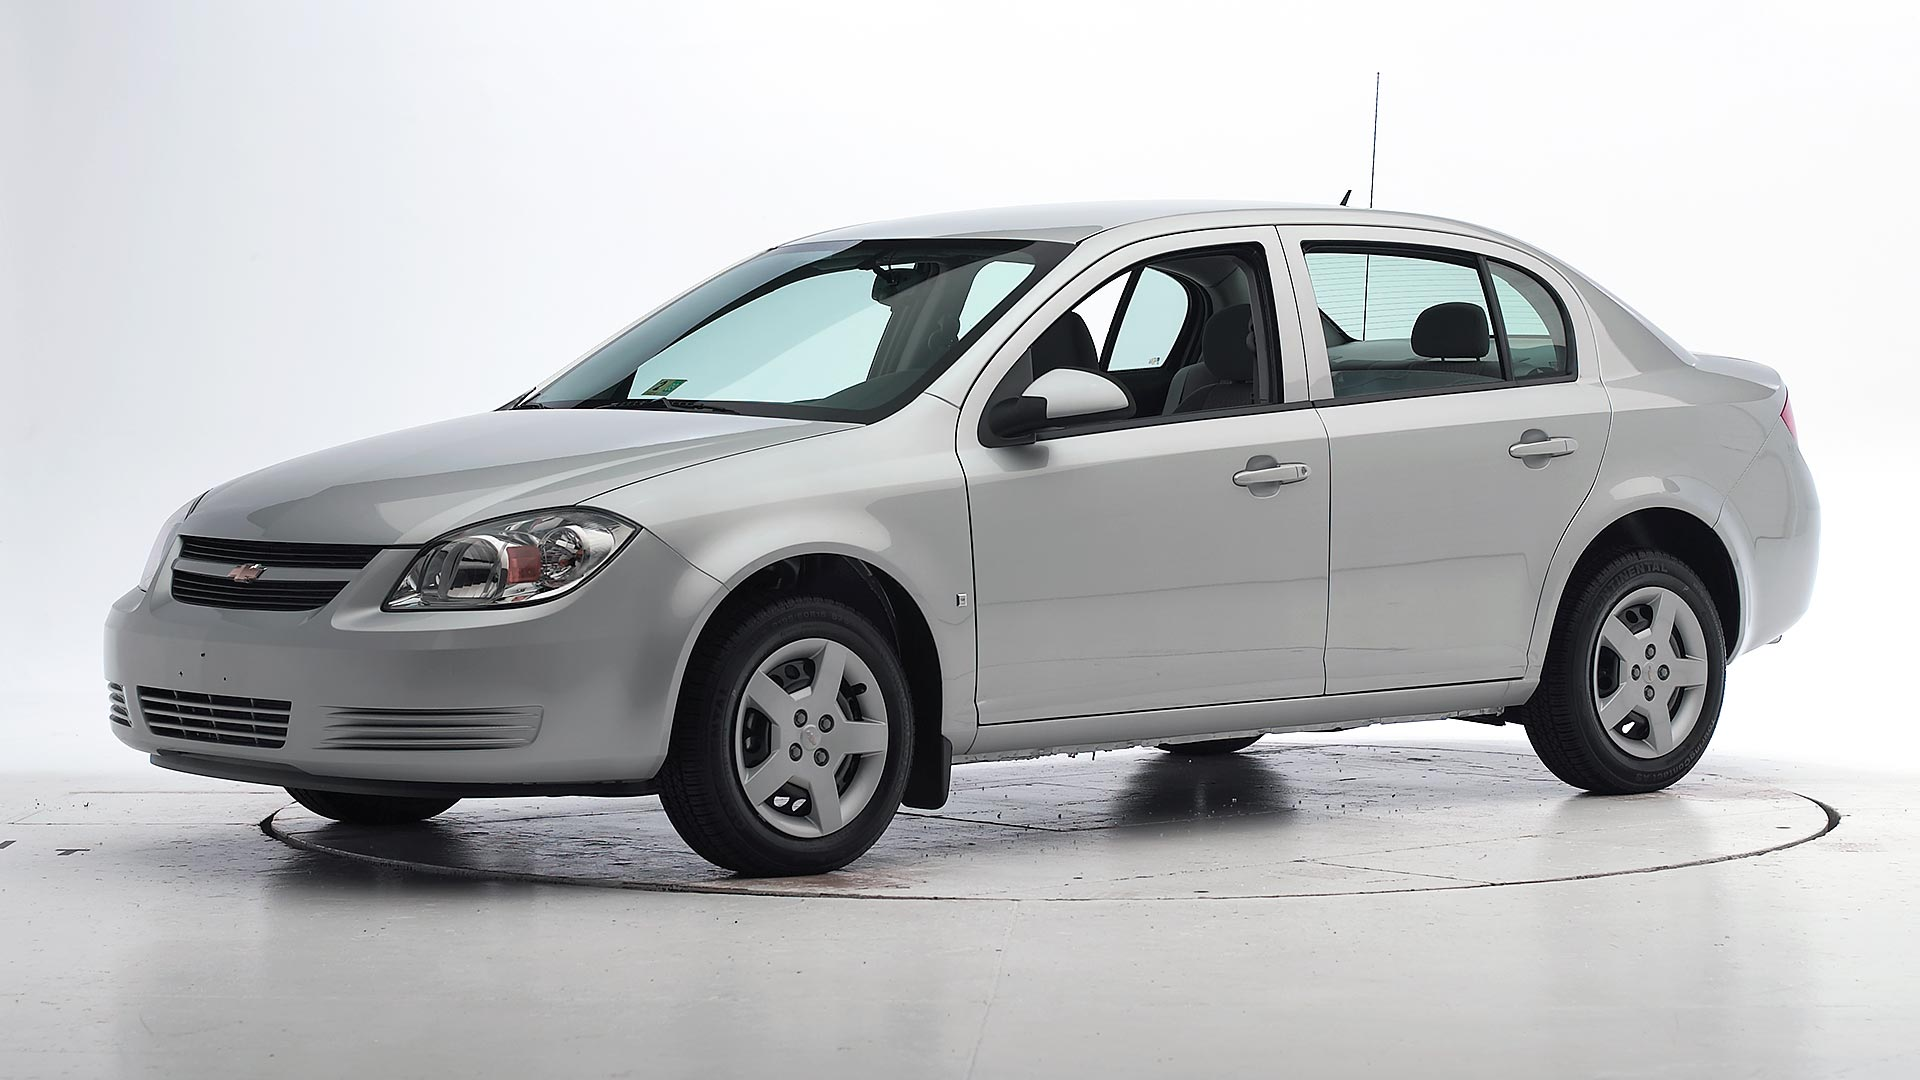 2008 Chevrolet Cobalt 4-door sedan